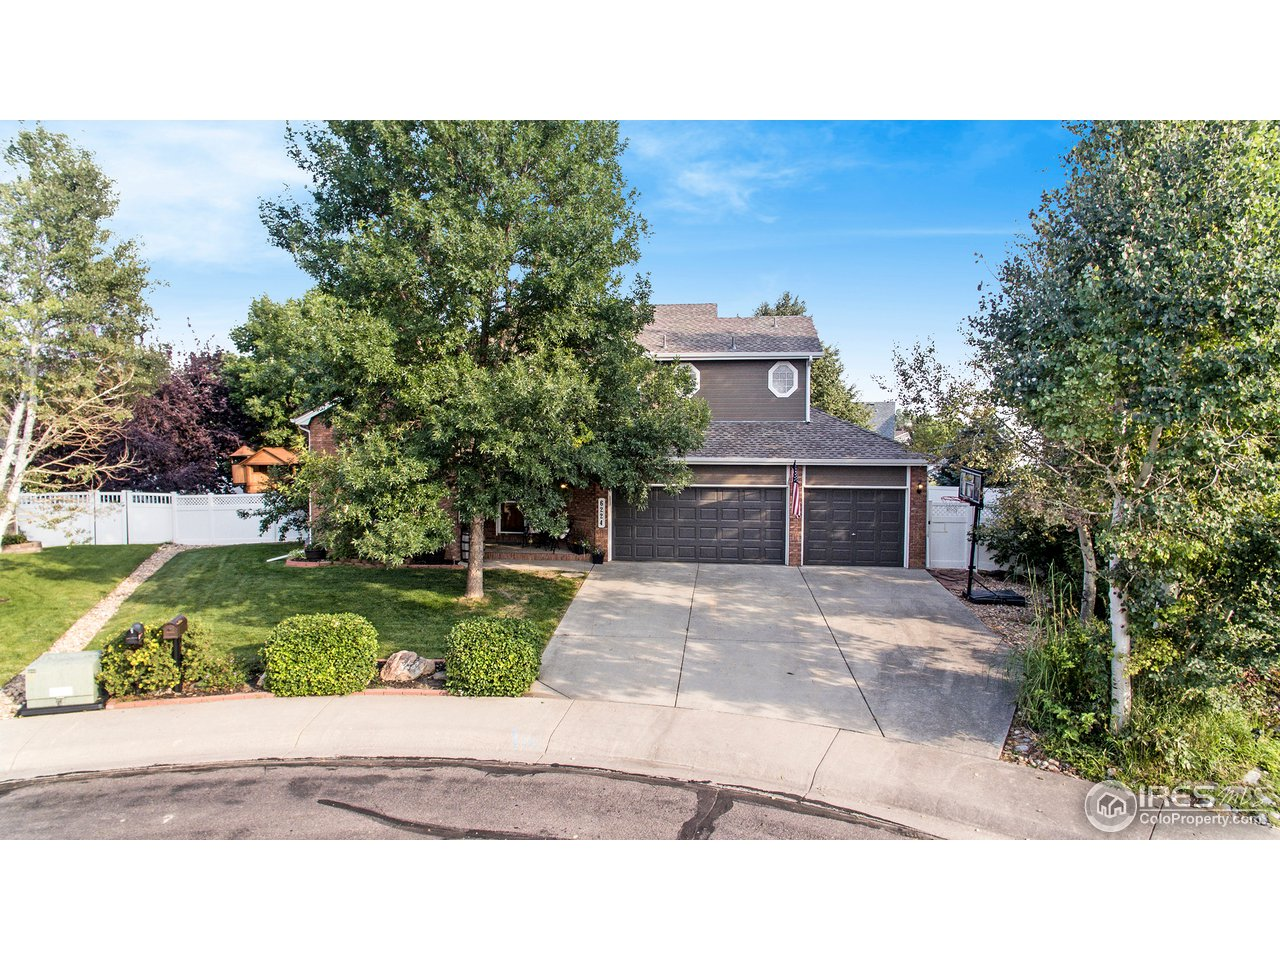 6224 W 3rd St, Greeley CO 80634